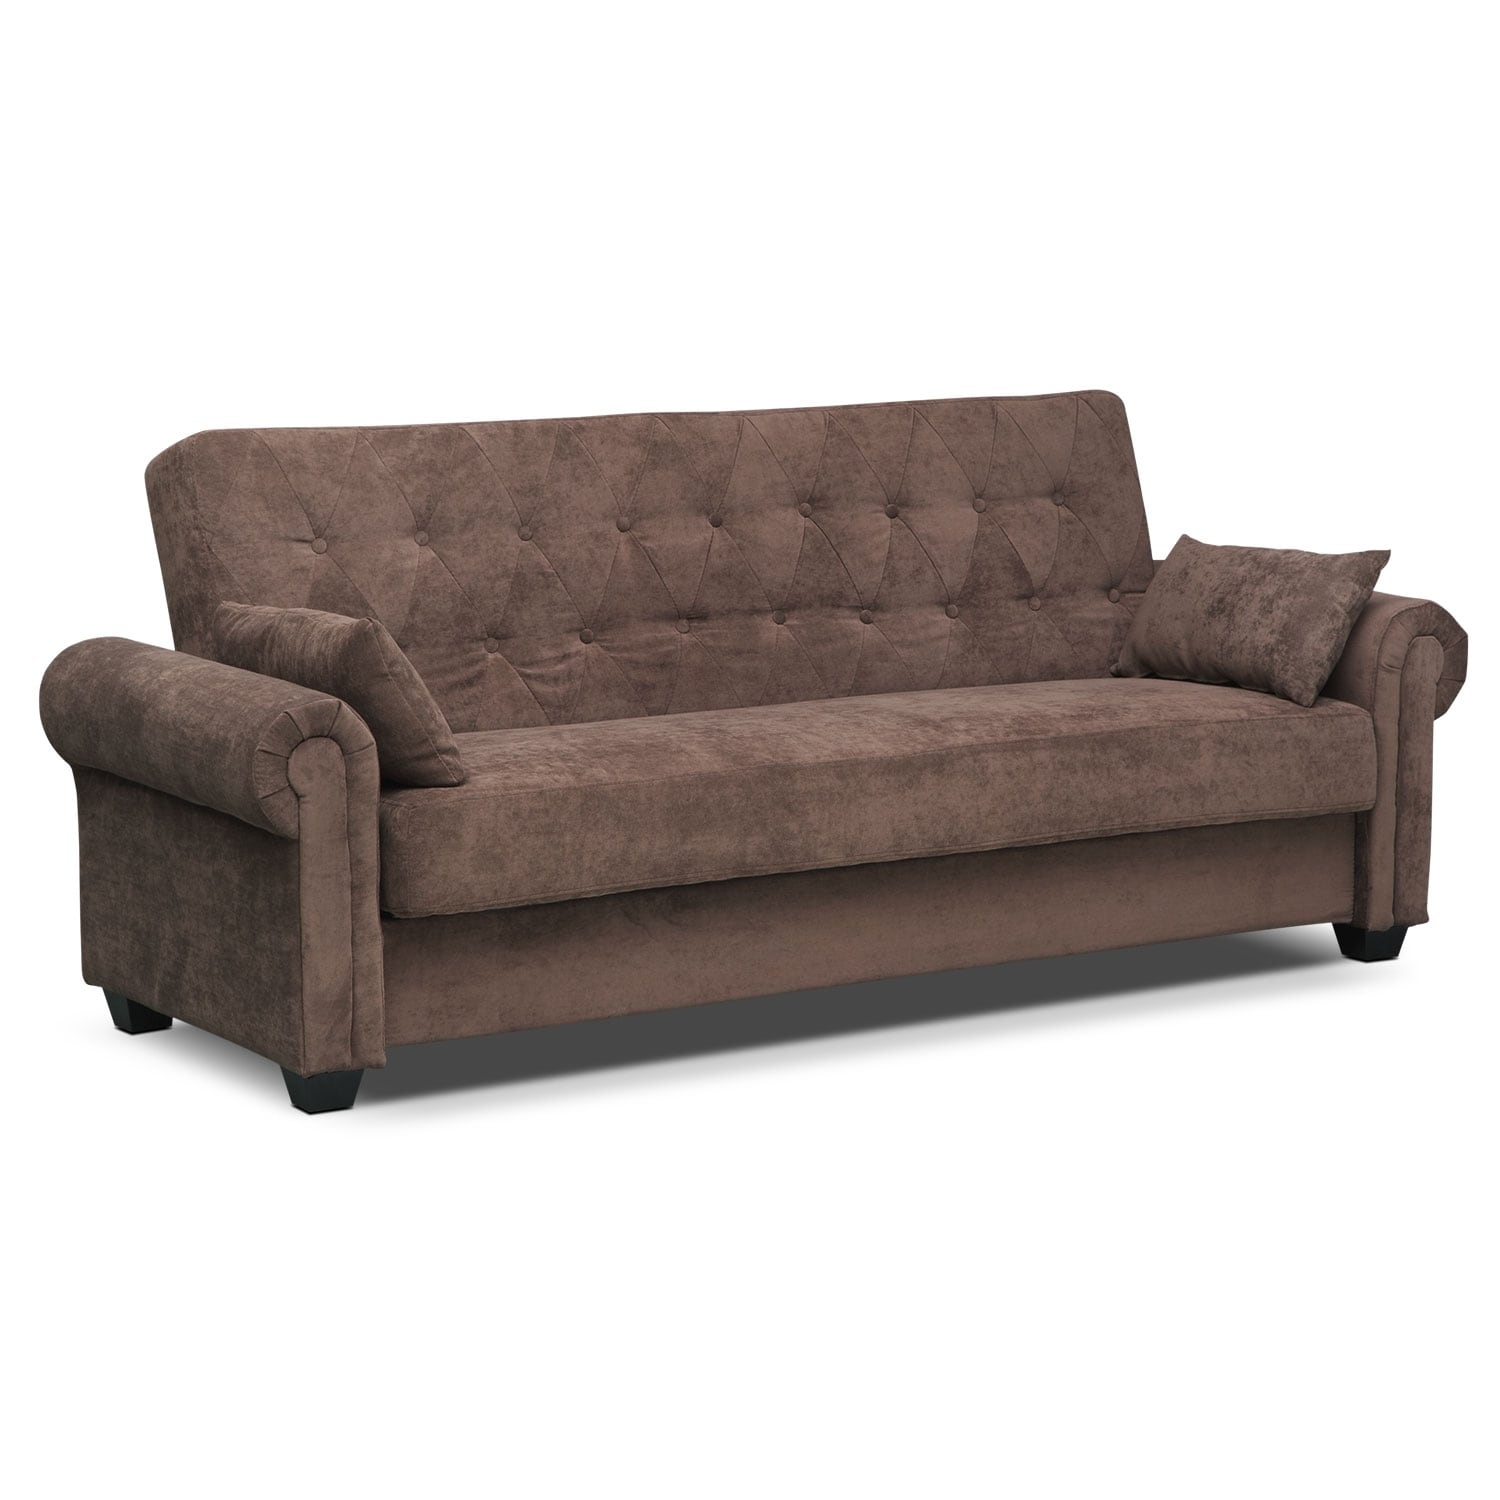 Sofa bed sleeper sofa and sofa beds Andreas furniture